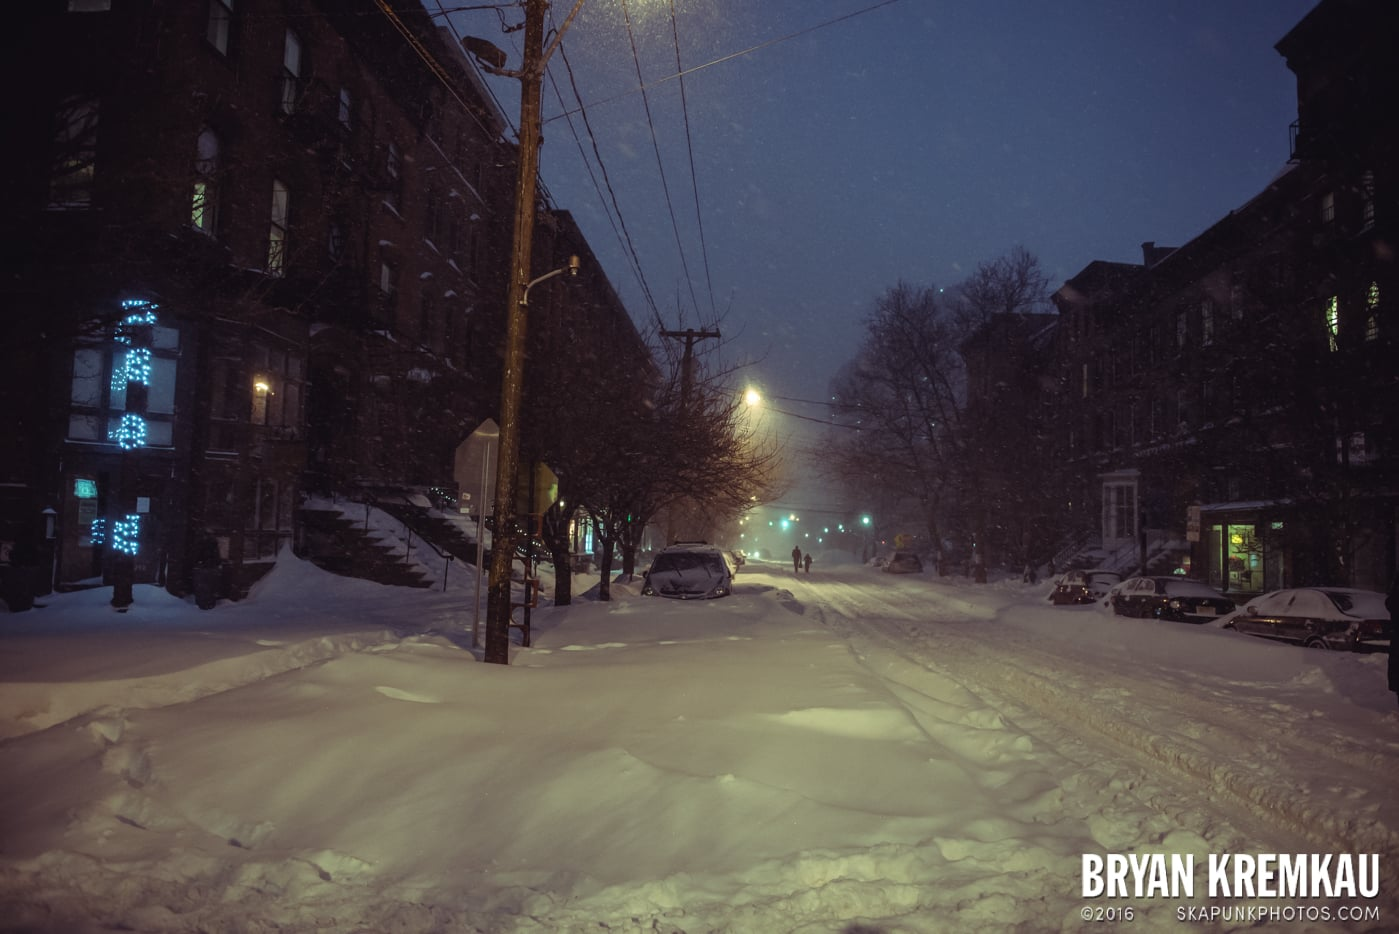 Blizzard 2016 in Jersey City, NJ - 1.23.16 (16)